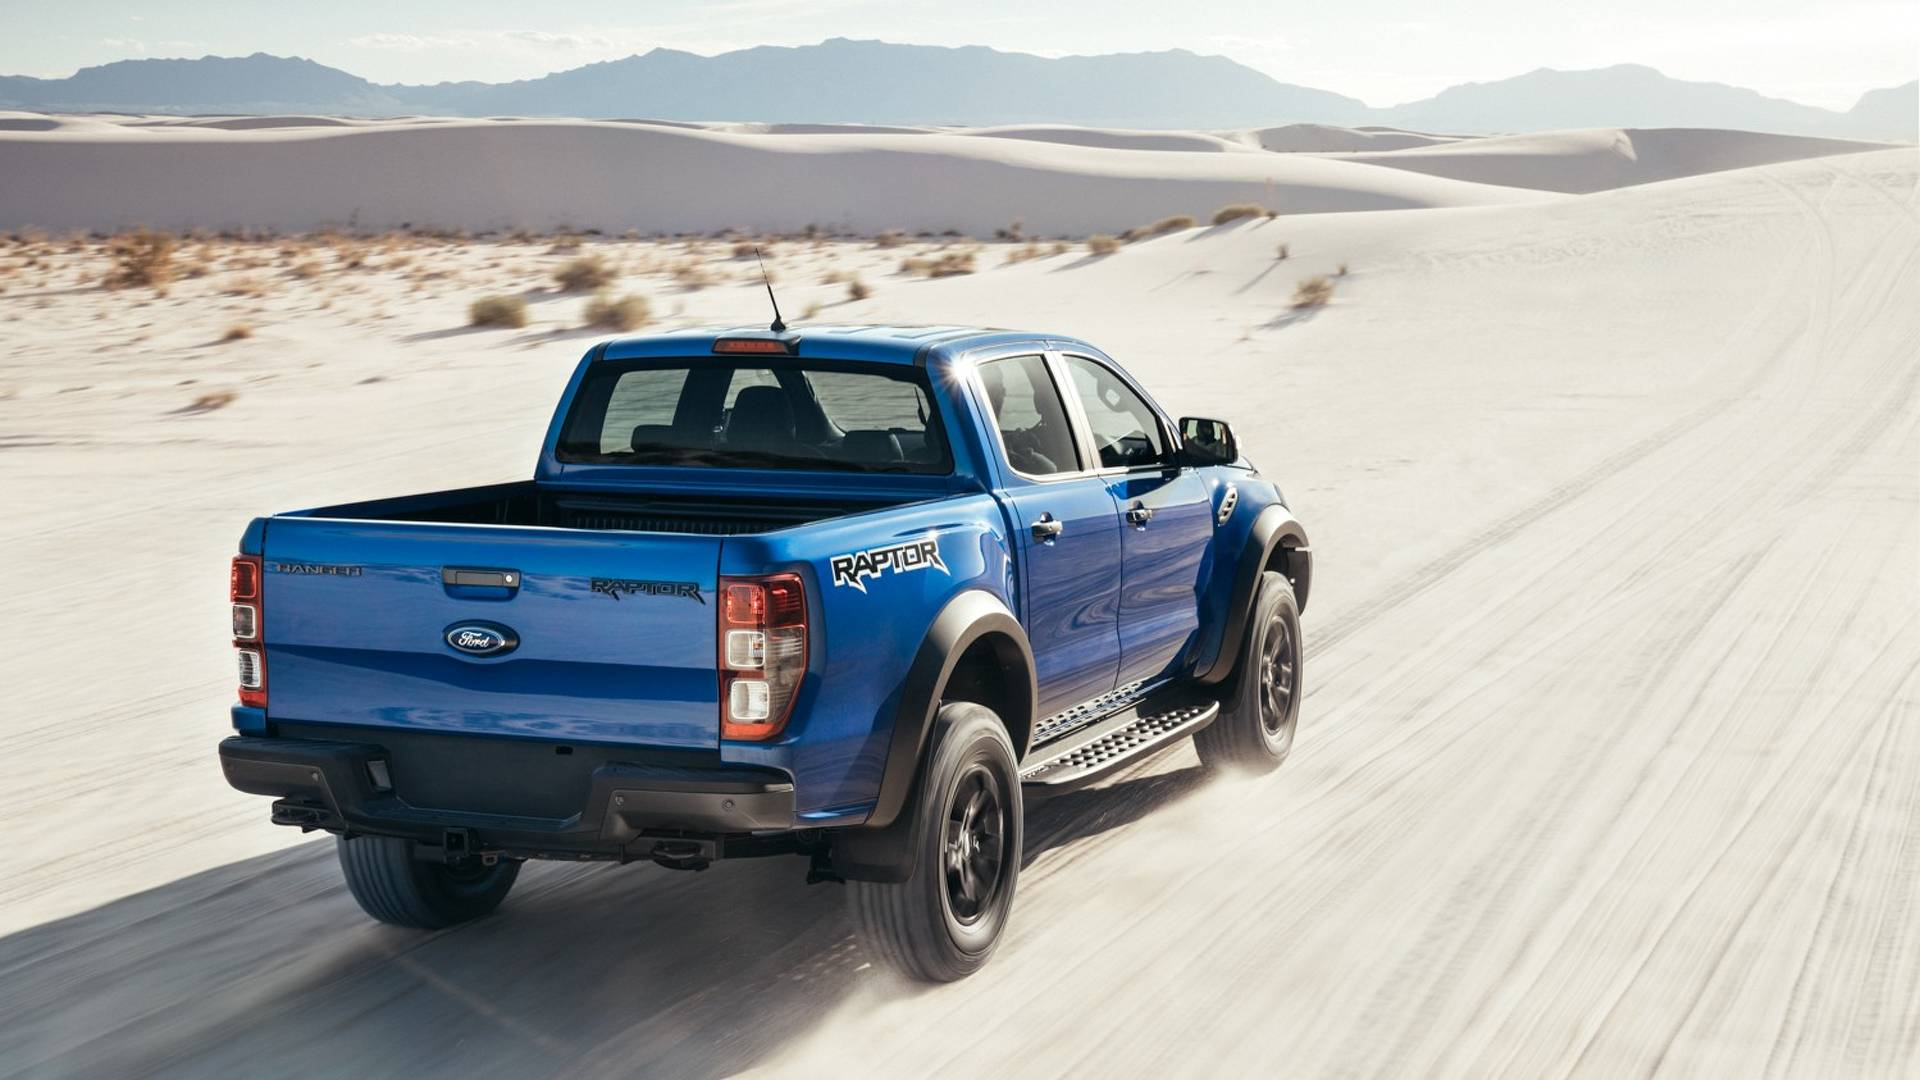 Ford Ranger Raptor 2018 (10)